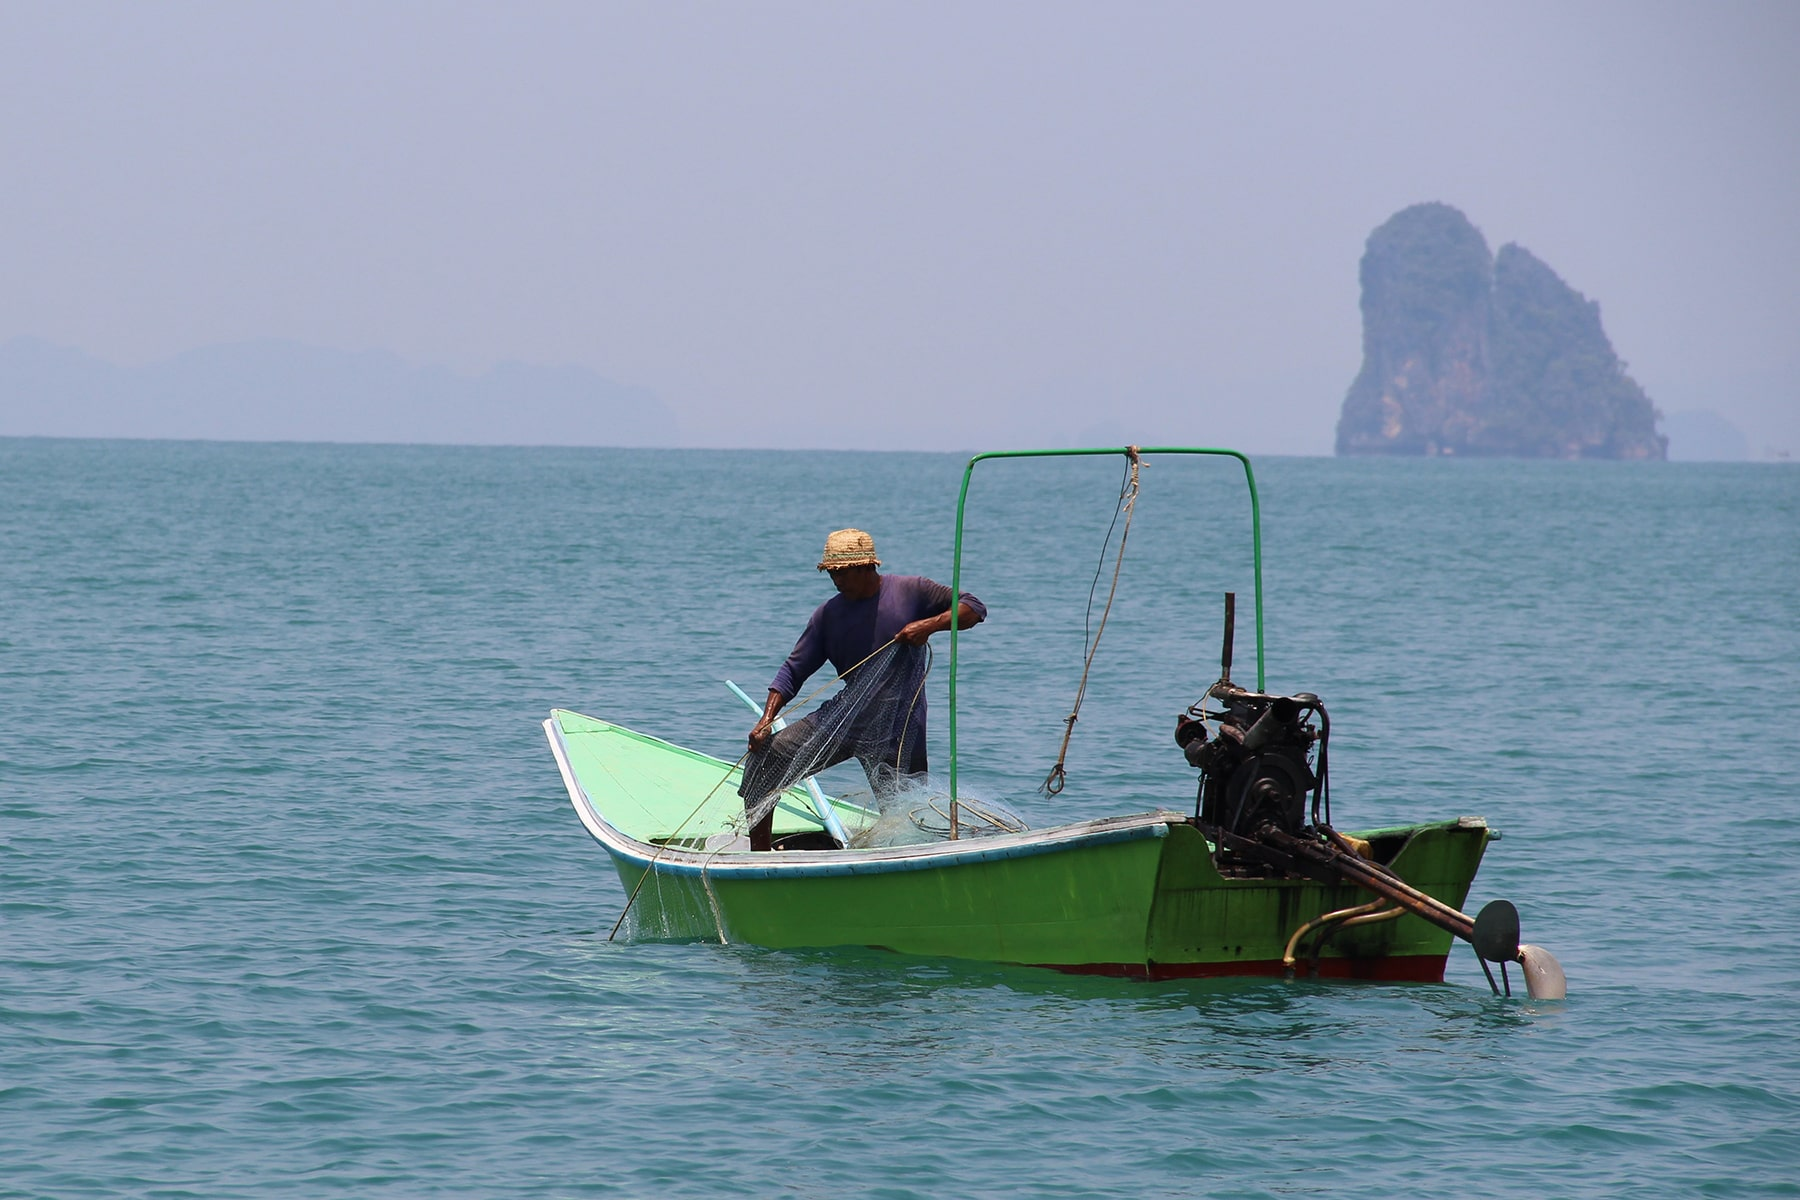 Koh Yao Yai fisherman on his boat